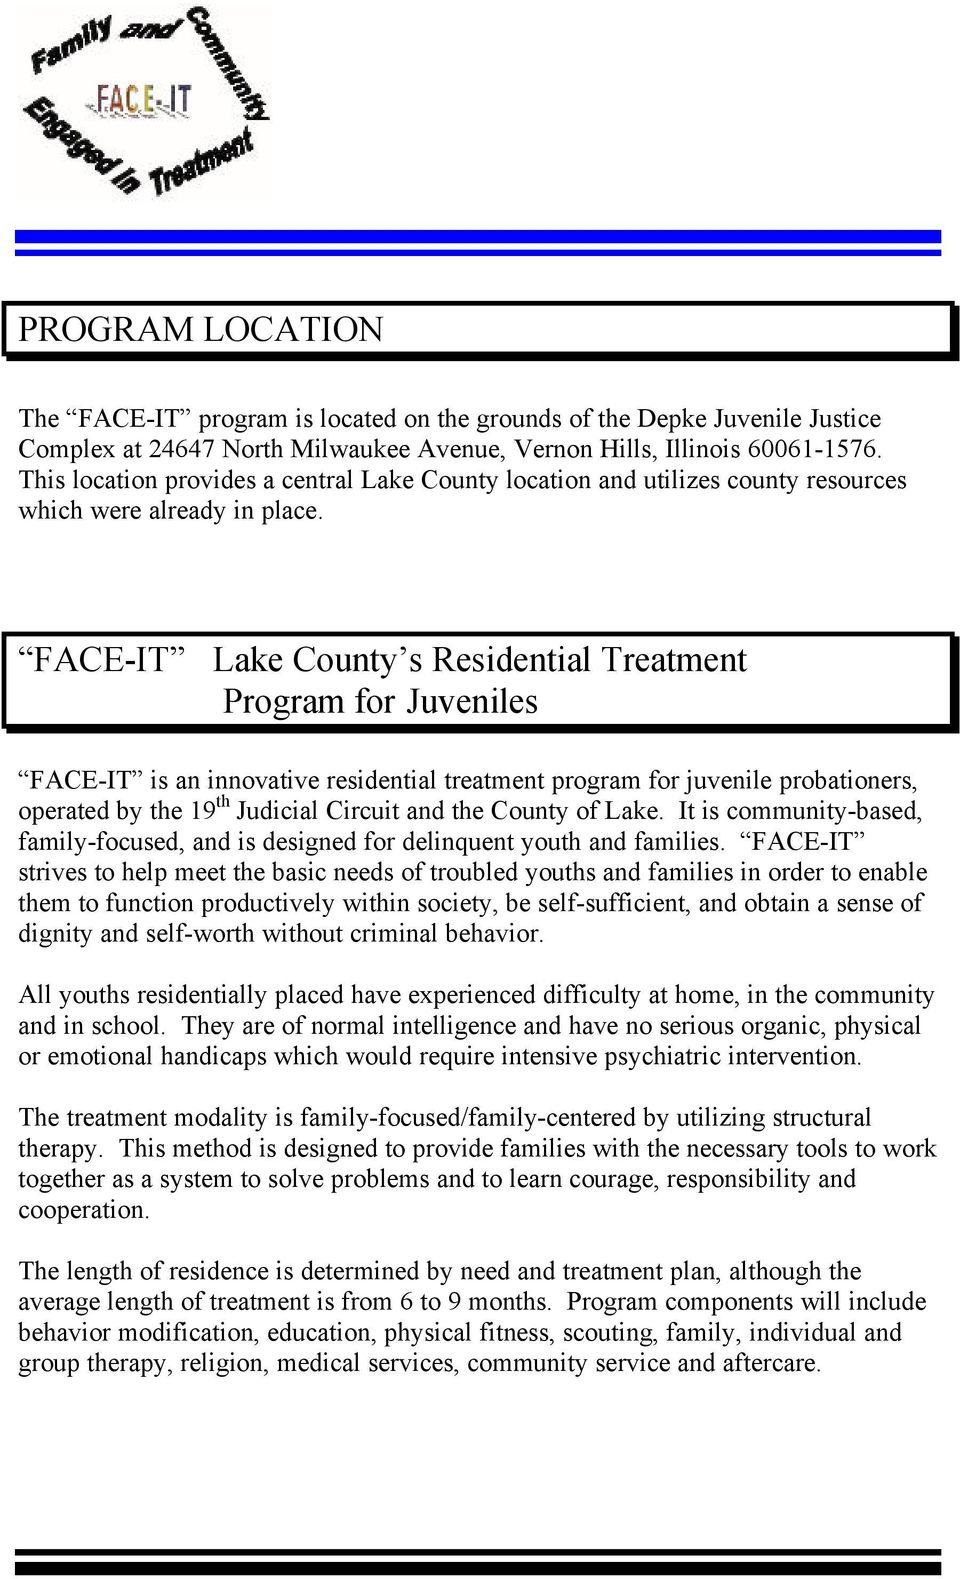 FACE-IT Lake County s Residential Treatment Program for Juveniles FACE-IT is an innovative residential treatment program for juvenile probationers, operated by the 19 th Judicial Circuit and the